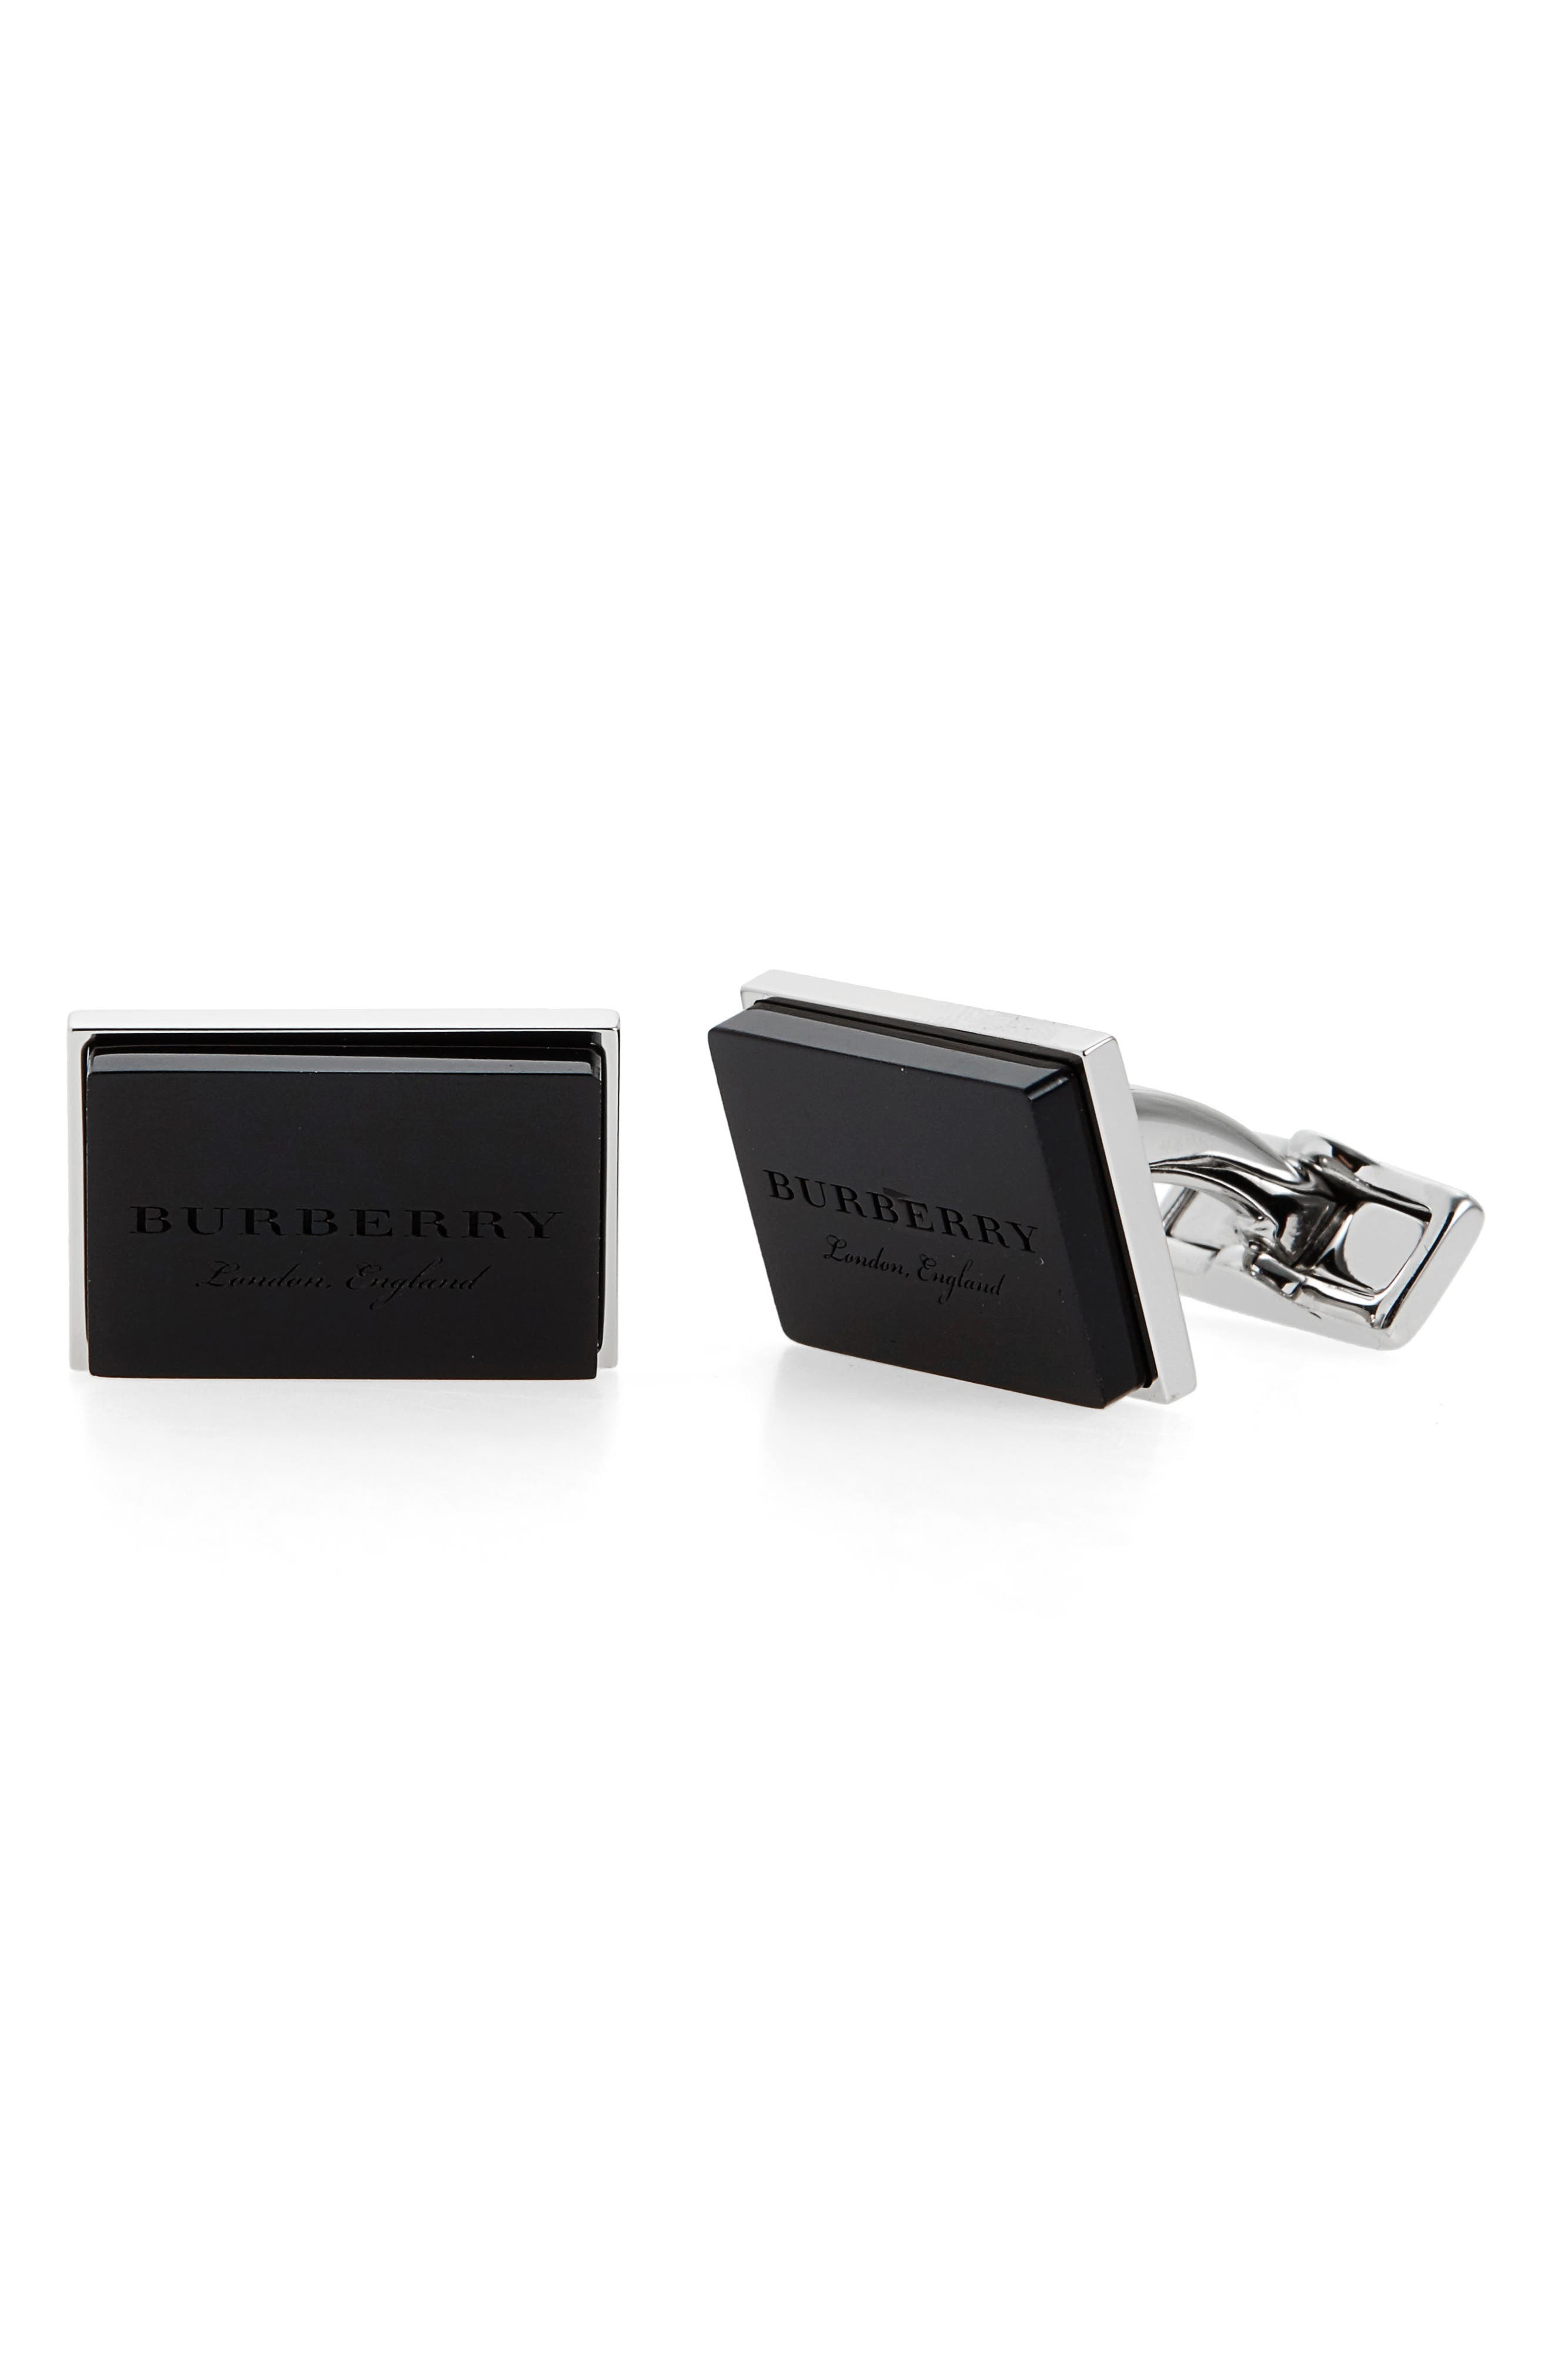 Buberry London England Square Cuff Links